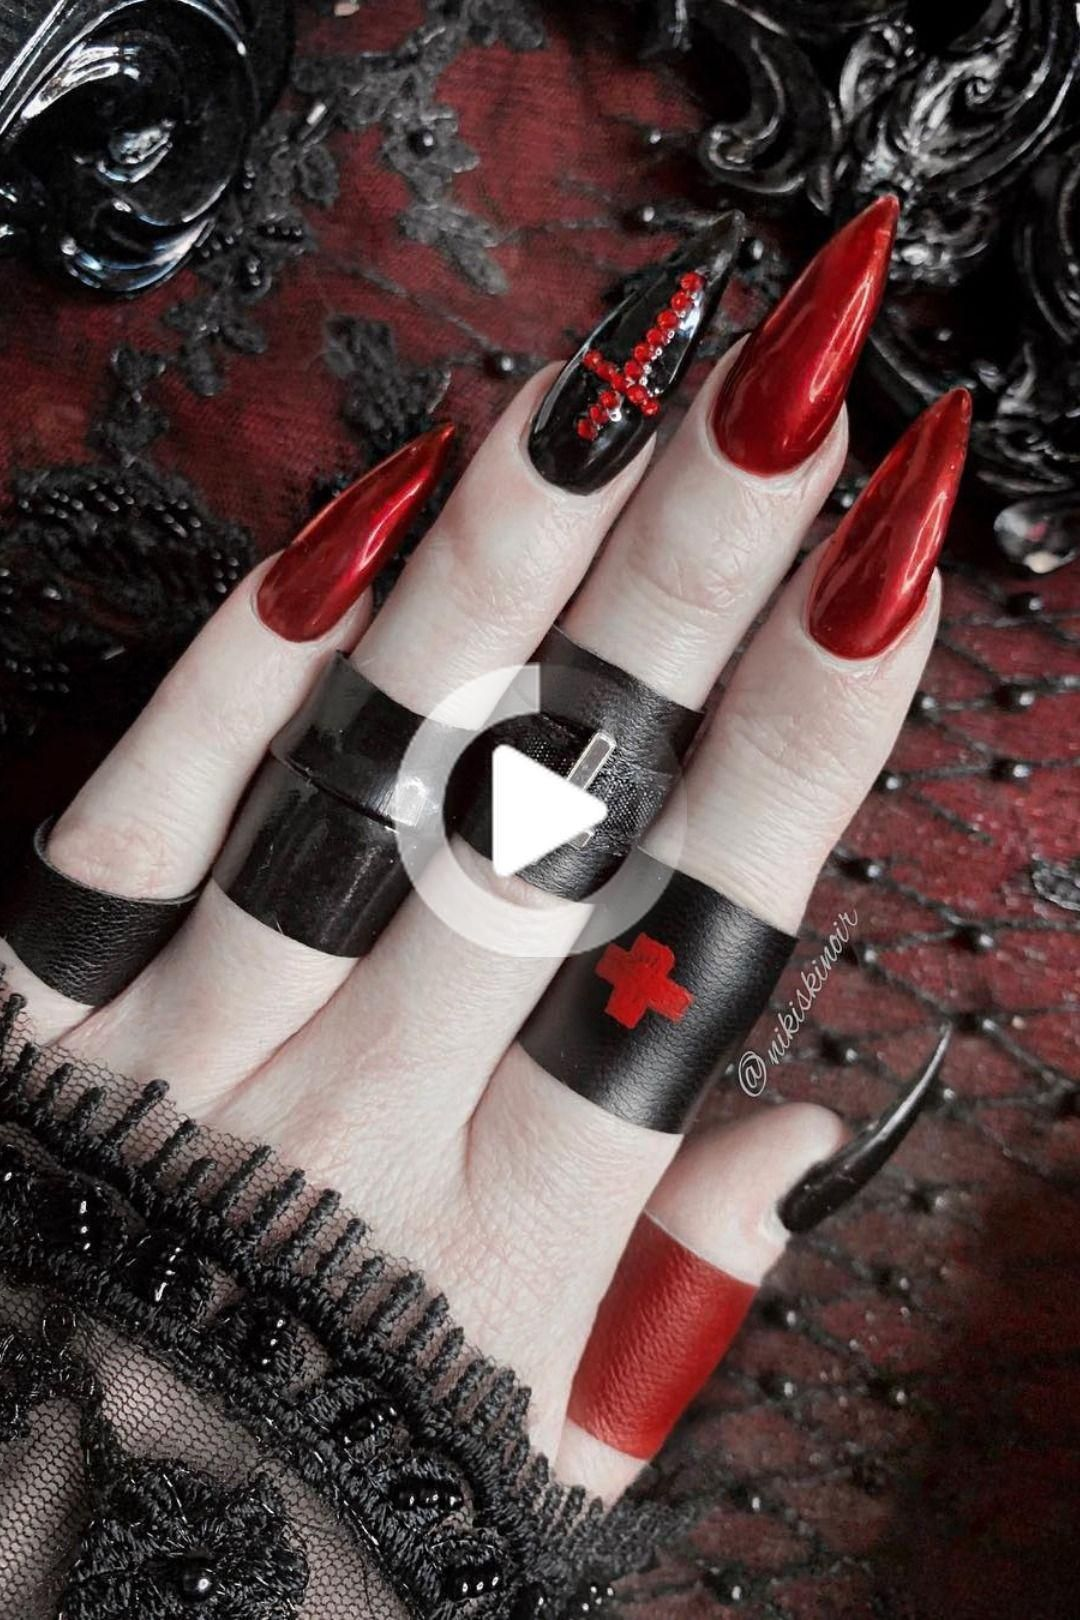 Best Halloween Nail Ideas in 2019 in 2020 | Edgy nails ...